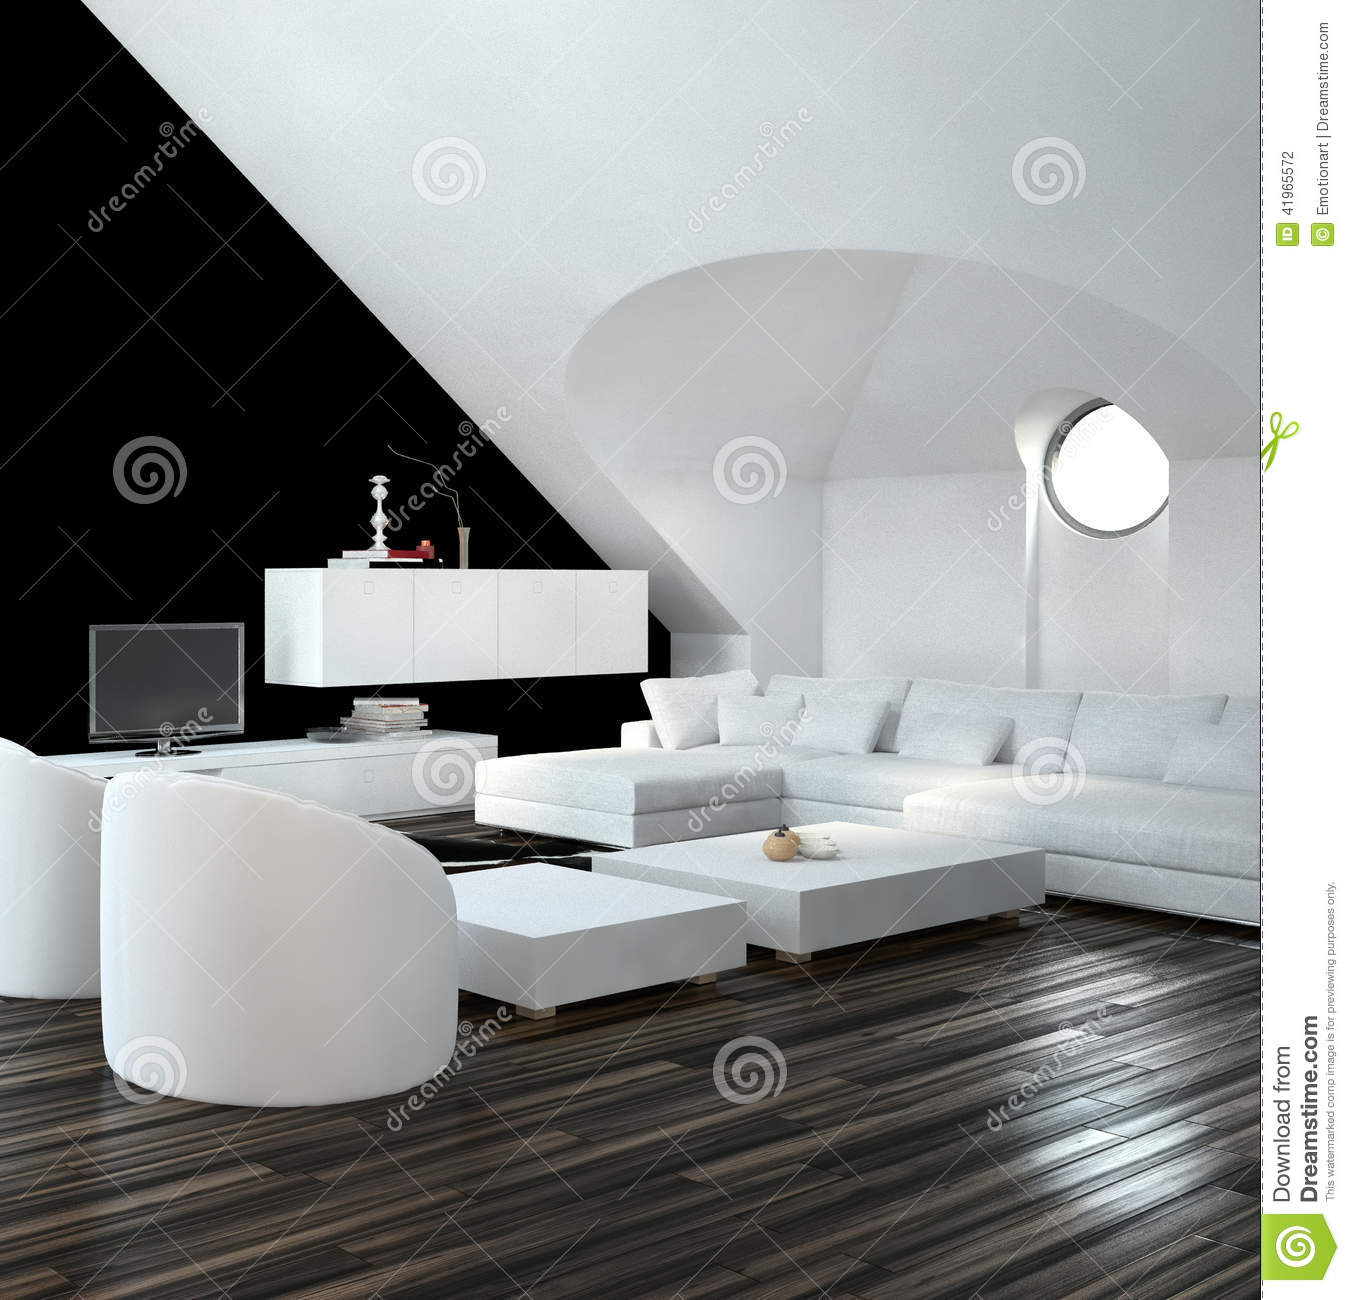 int rieur noir et blanc moderne de salon de grenier illustration stock image 41965572. Black Bedroom Furniture Sets. Home Design Ideas